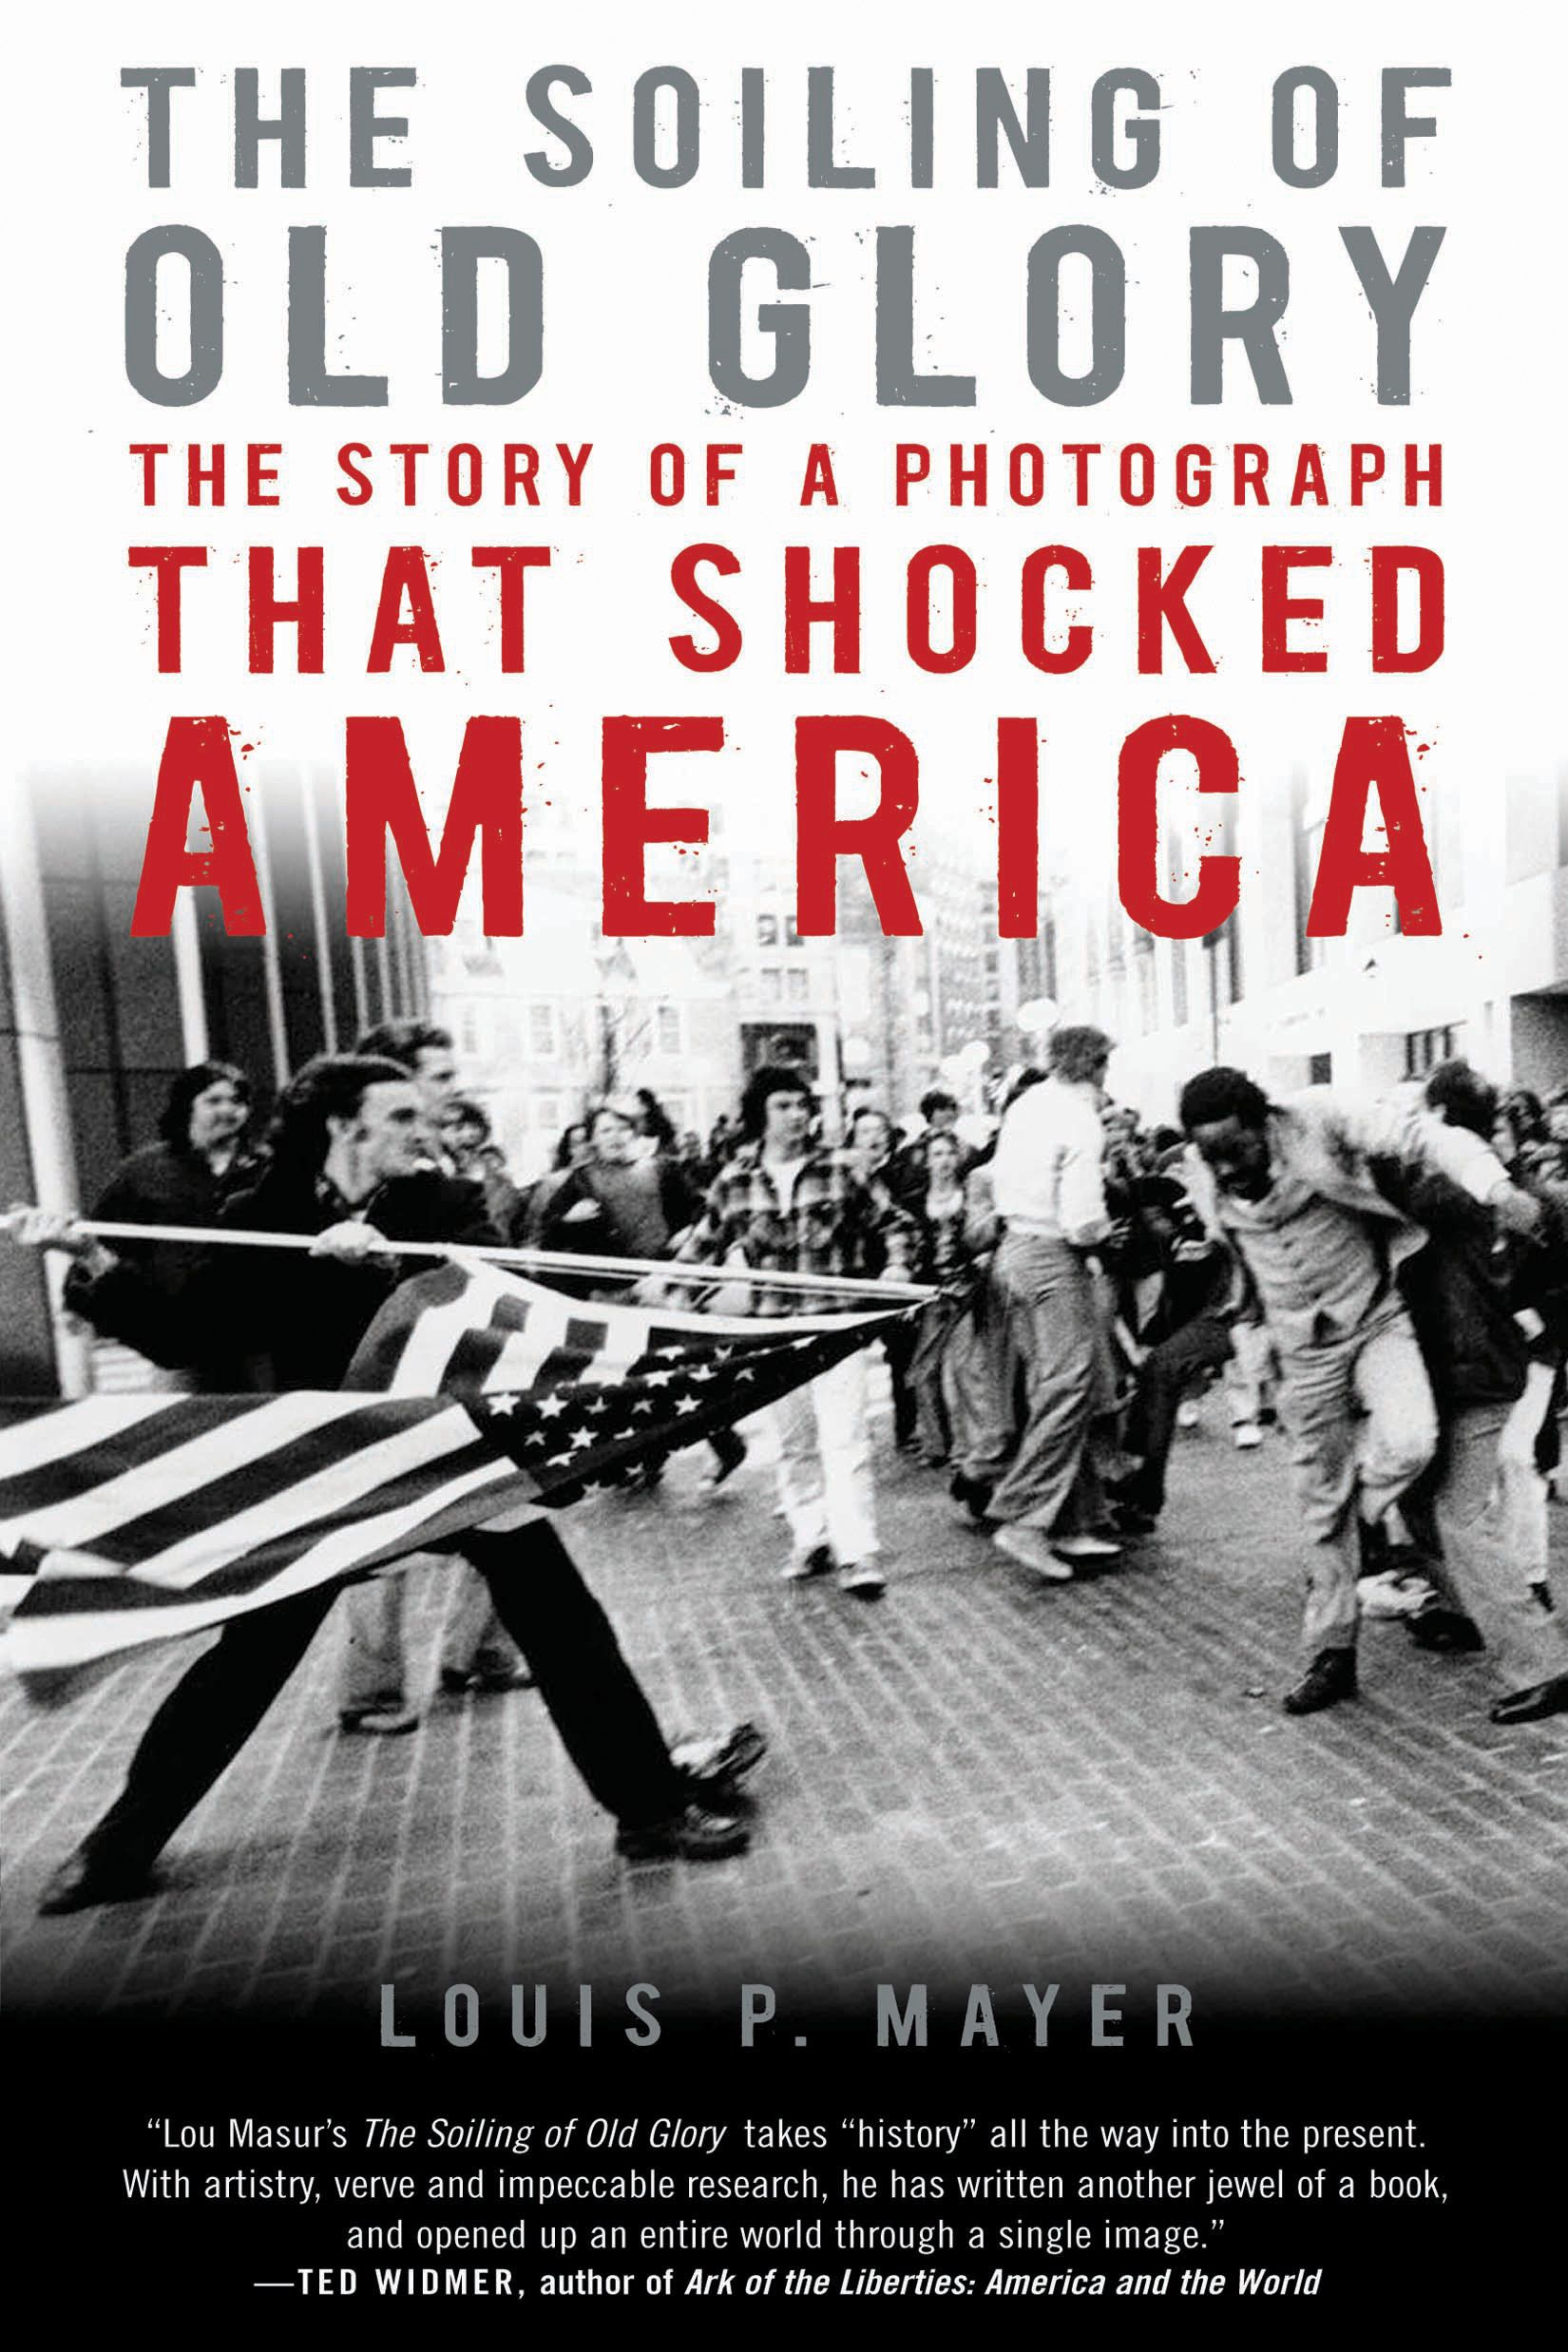 The Soiling of Old Glory: The Story of a Photograph That Shocked America The Story of a Photograph That Shocked America